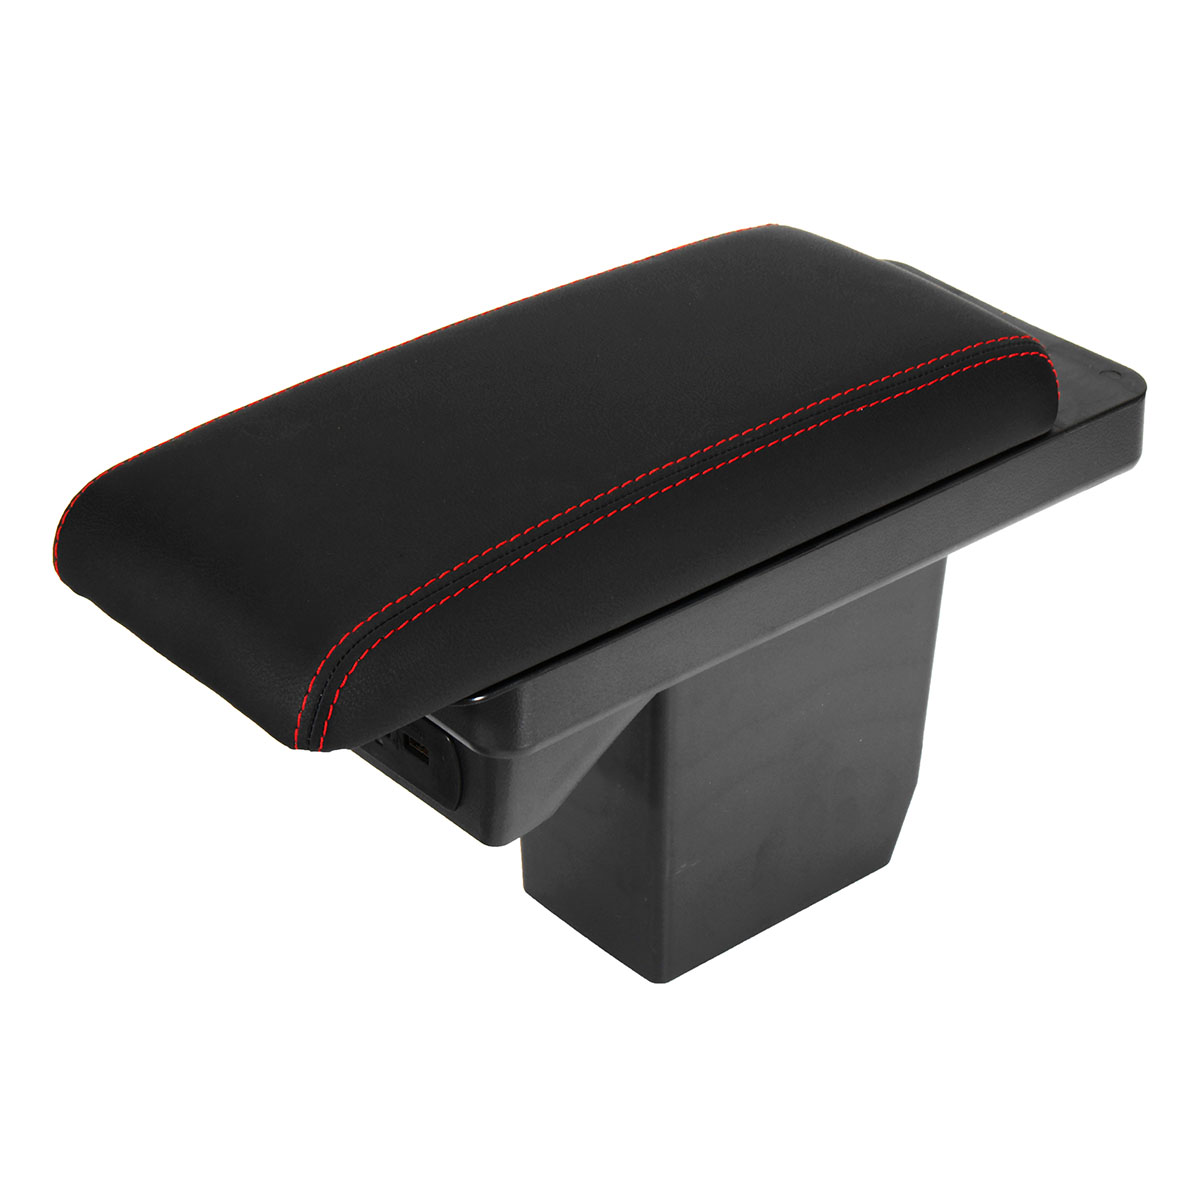 Leather Car Armrest Console Center Arm Rest Box Cover Cushion with Charger Port for Peugeot 2008 301 2017-2018/Citroen C3-XR